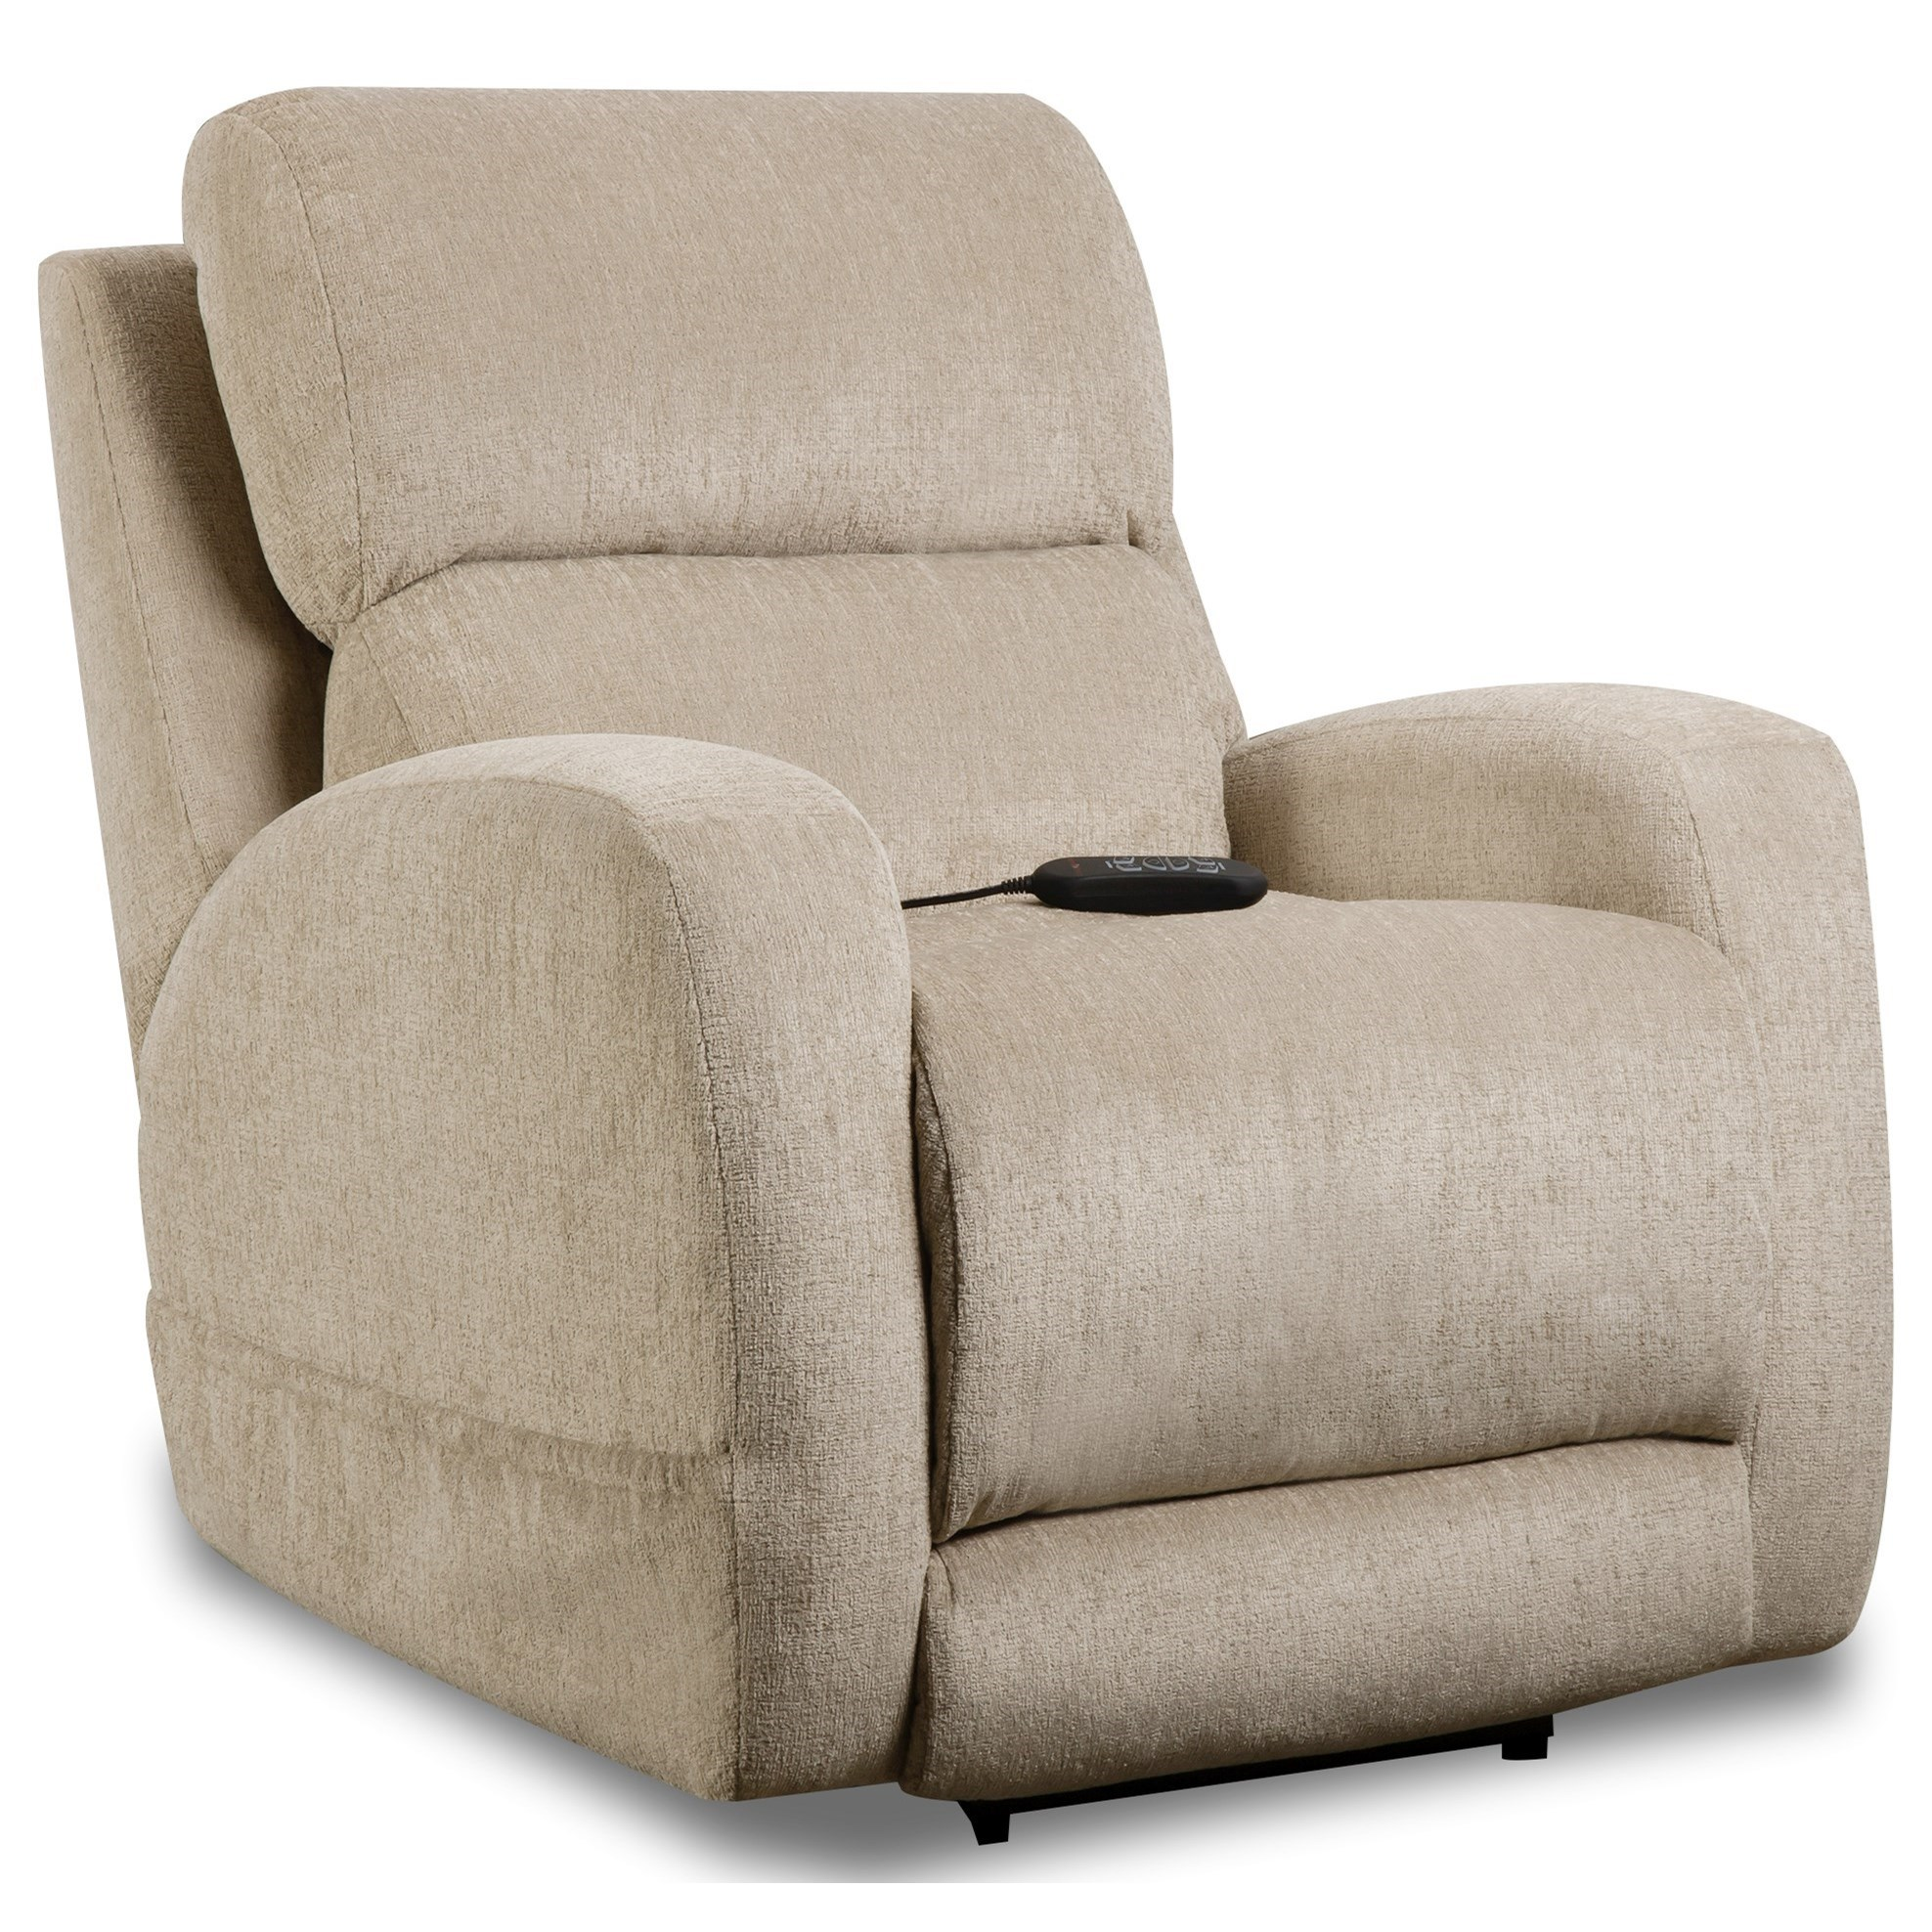 Sterling Power Wall-Saver Recliner by HomeStretch at Johnny Janosik